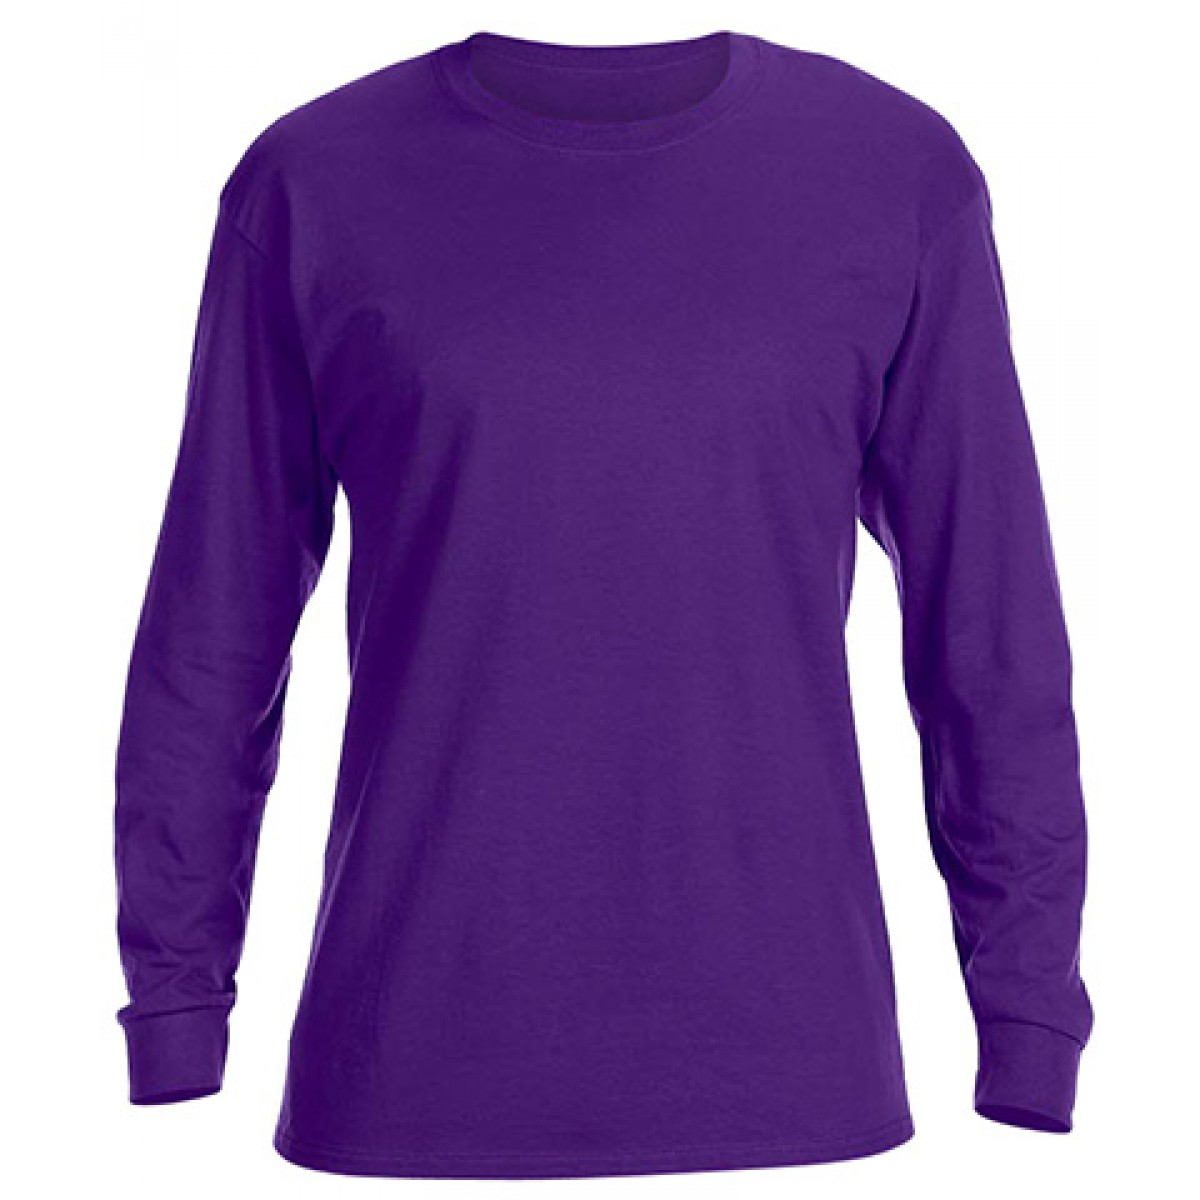 Basic Long Sleeve Crew Neck -Purple-3XL